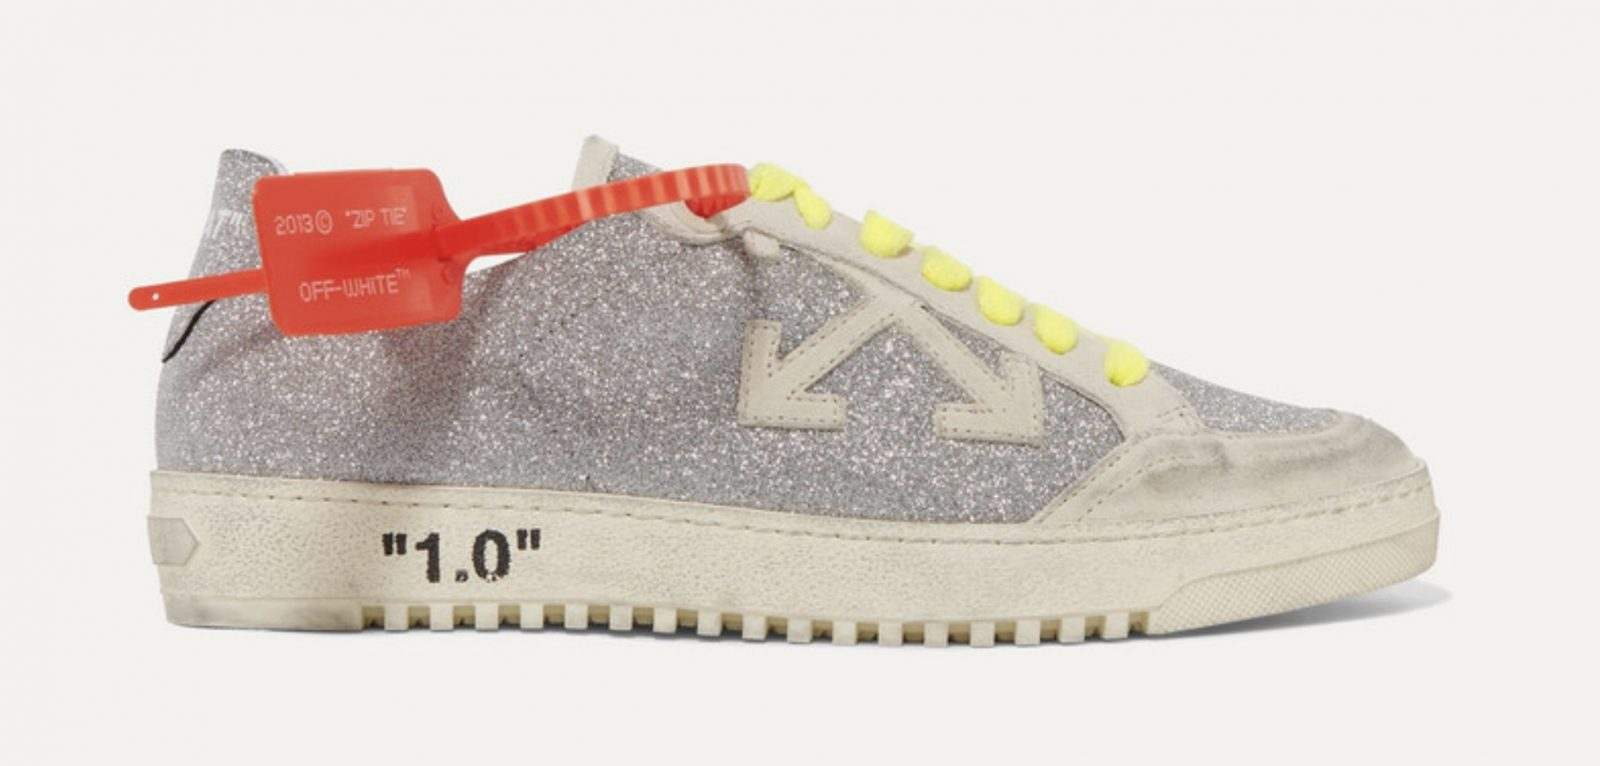 Off-White Arrow 2.0 distressed glittered leather